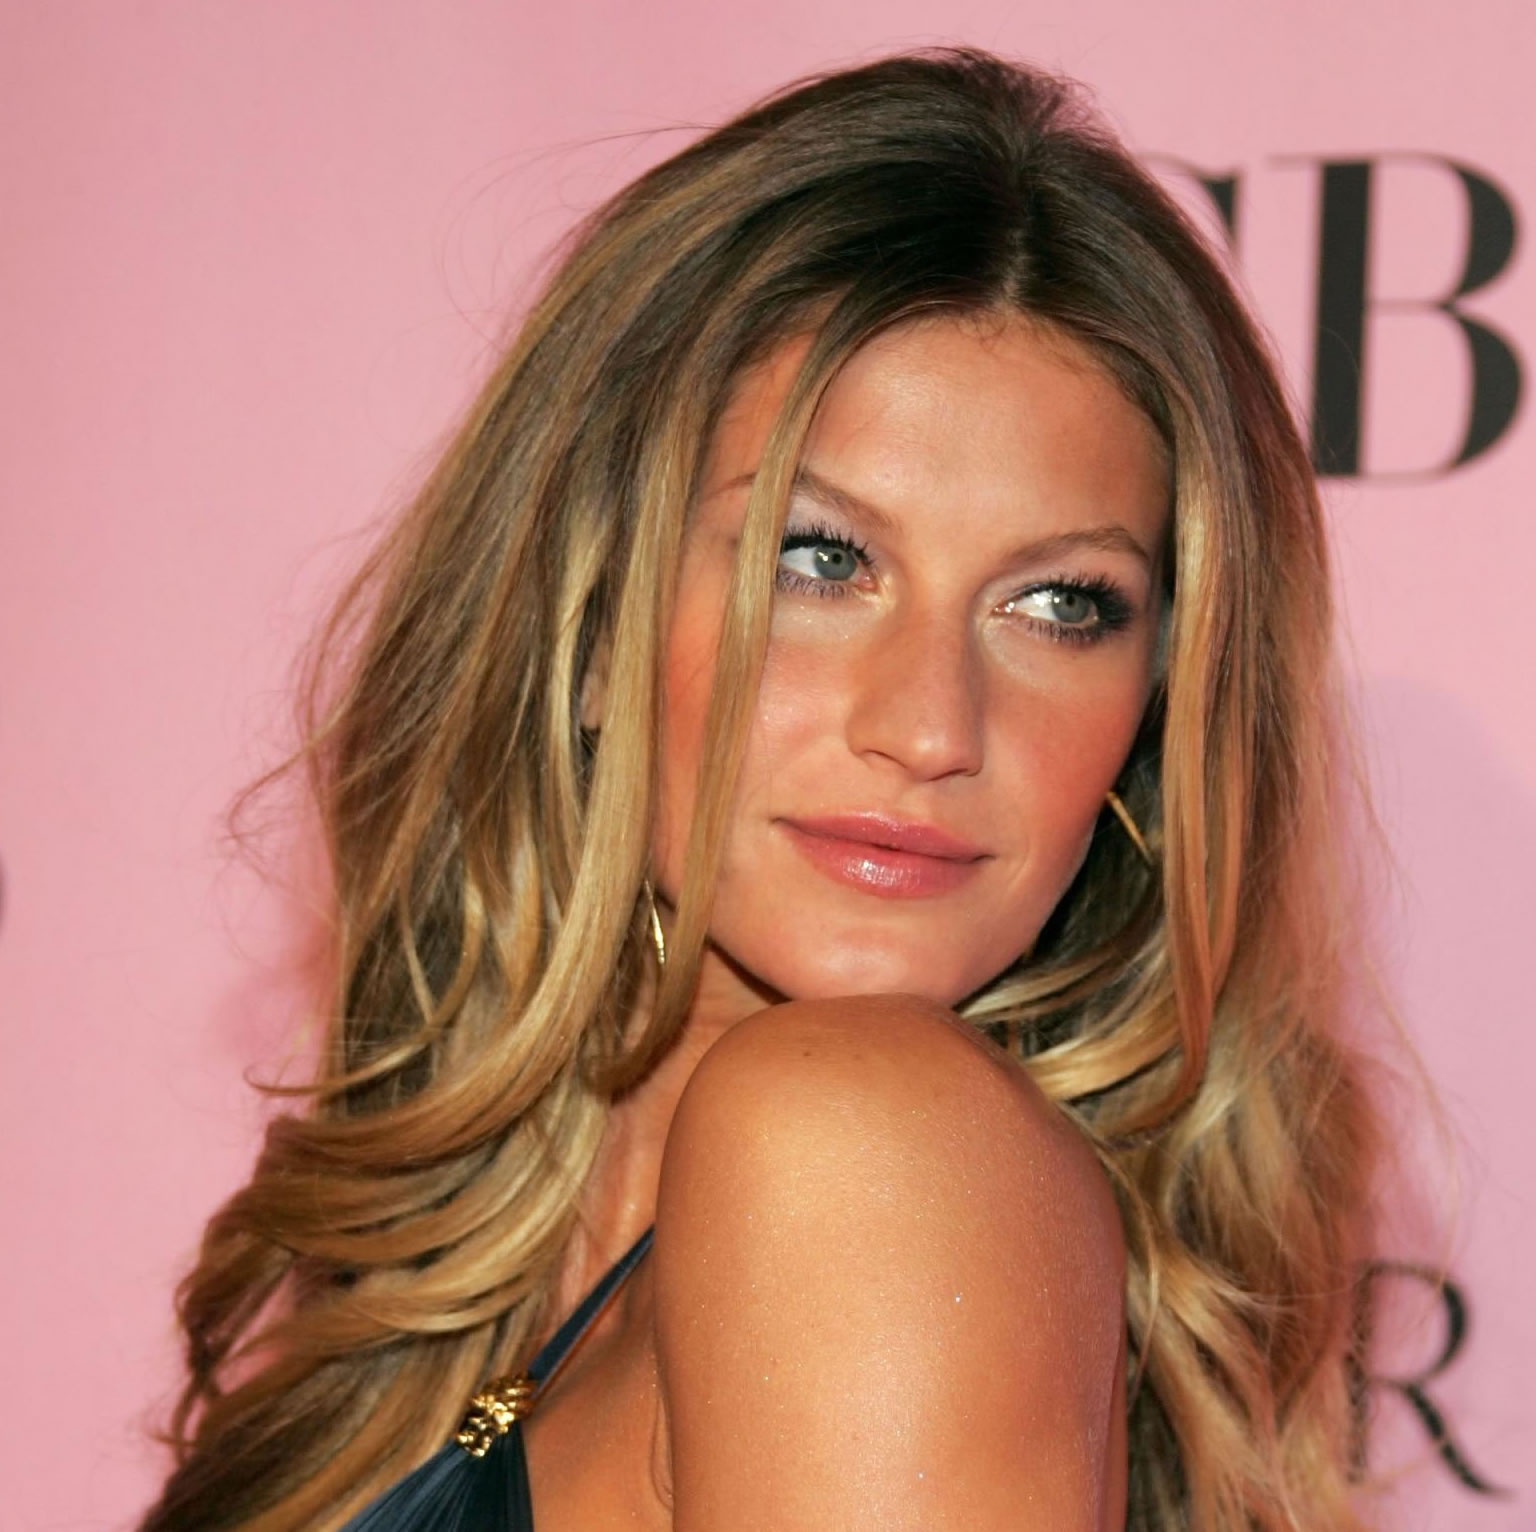 Who is the richest Super Model?